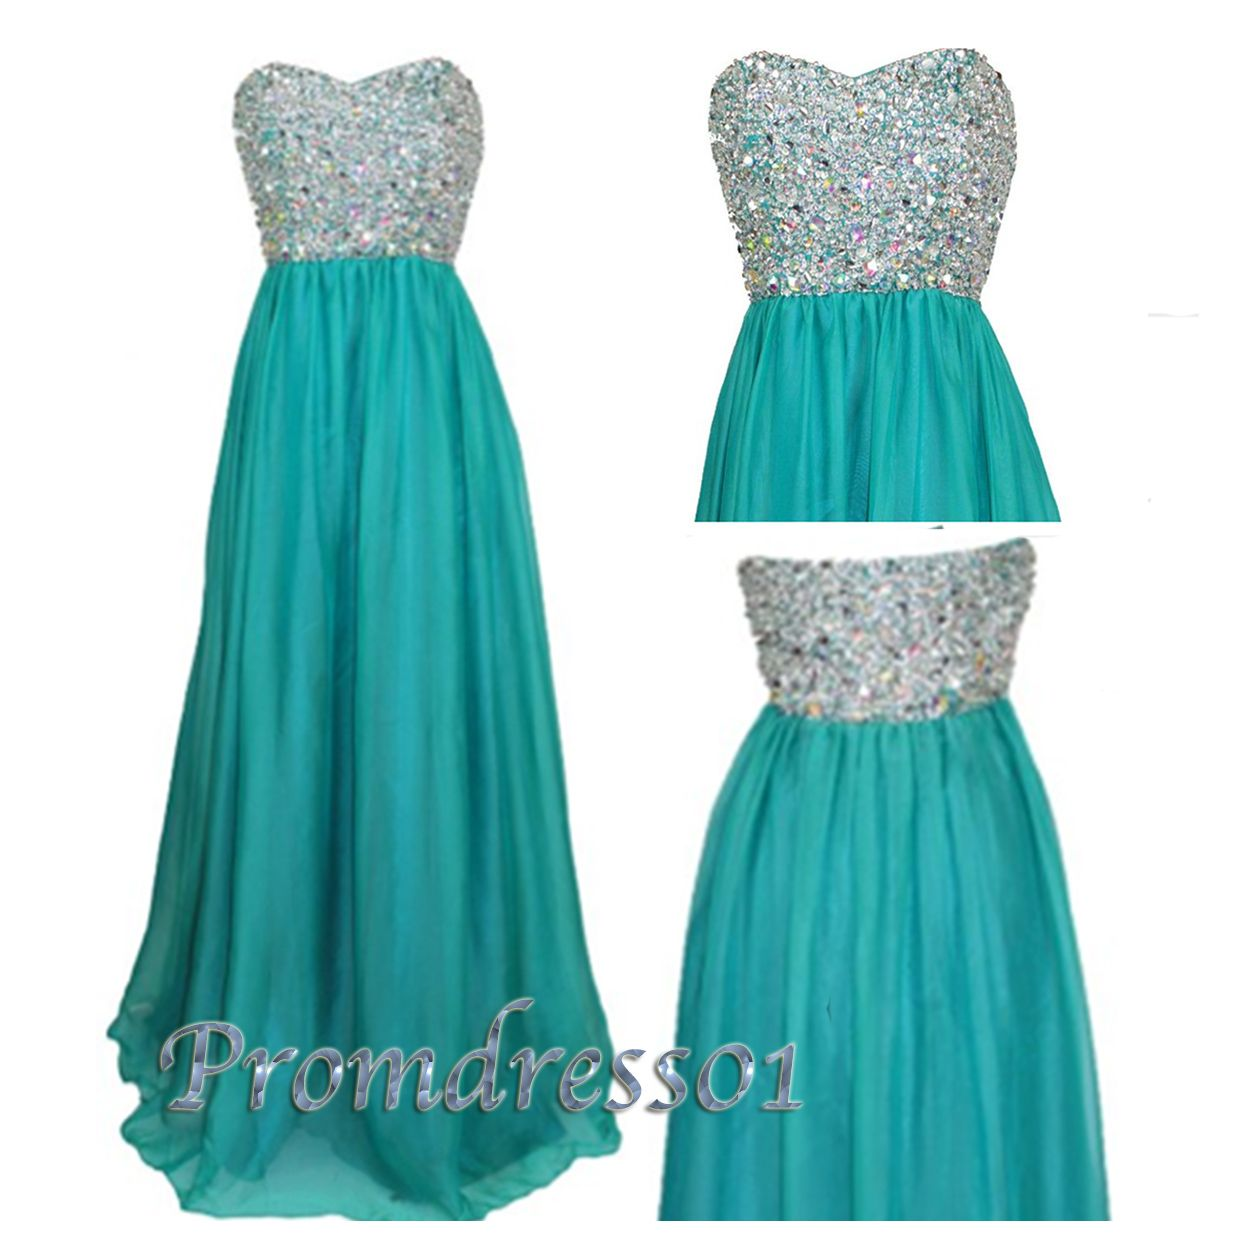 Hot sale long high neck modest prom dresses with sleeves floor